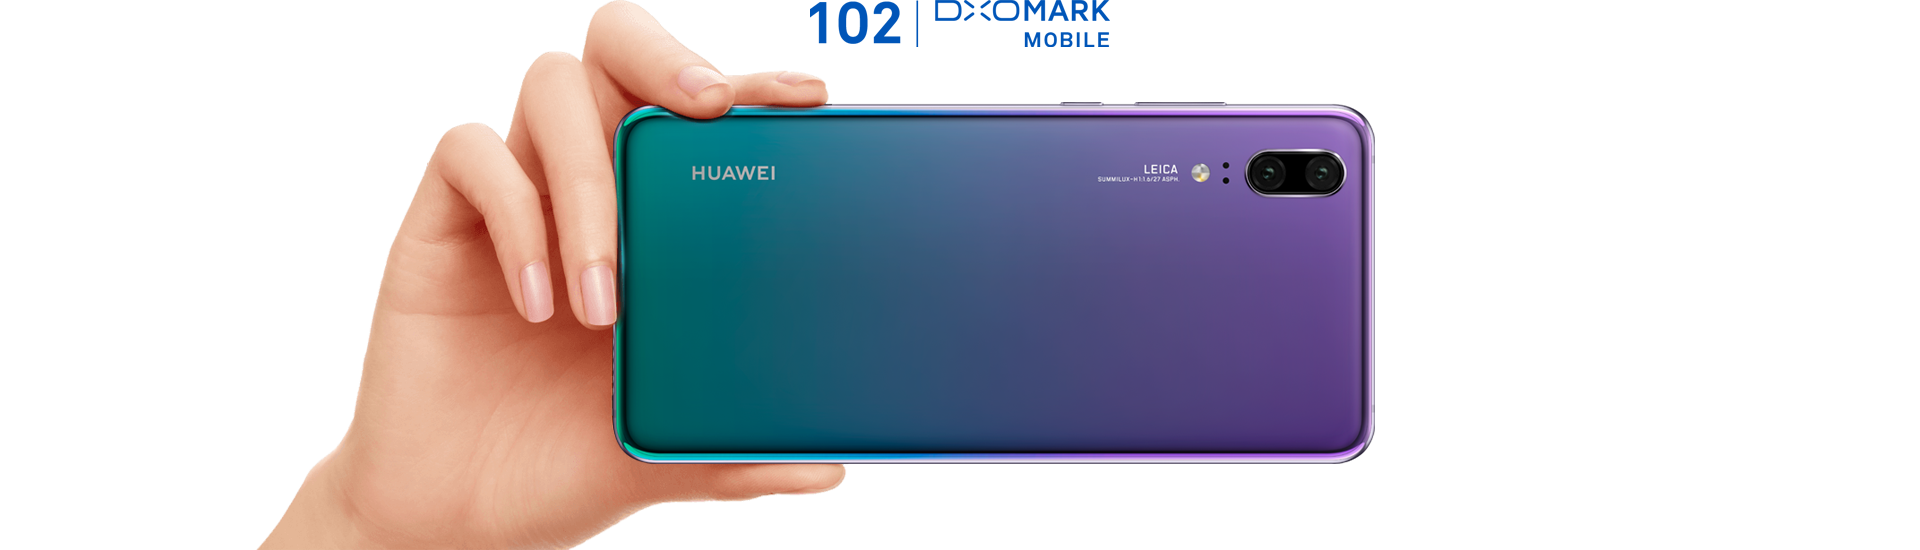 https://consumer.huawei.com/content/dam/huawei-cbg-site/common/mkt/pdp/phones/p20-update1/img/camera/dxo-model-p20-original.png